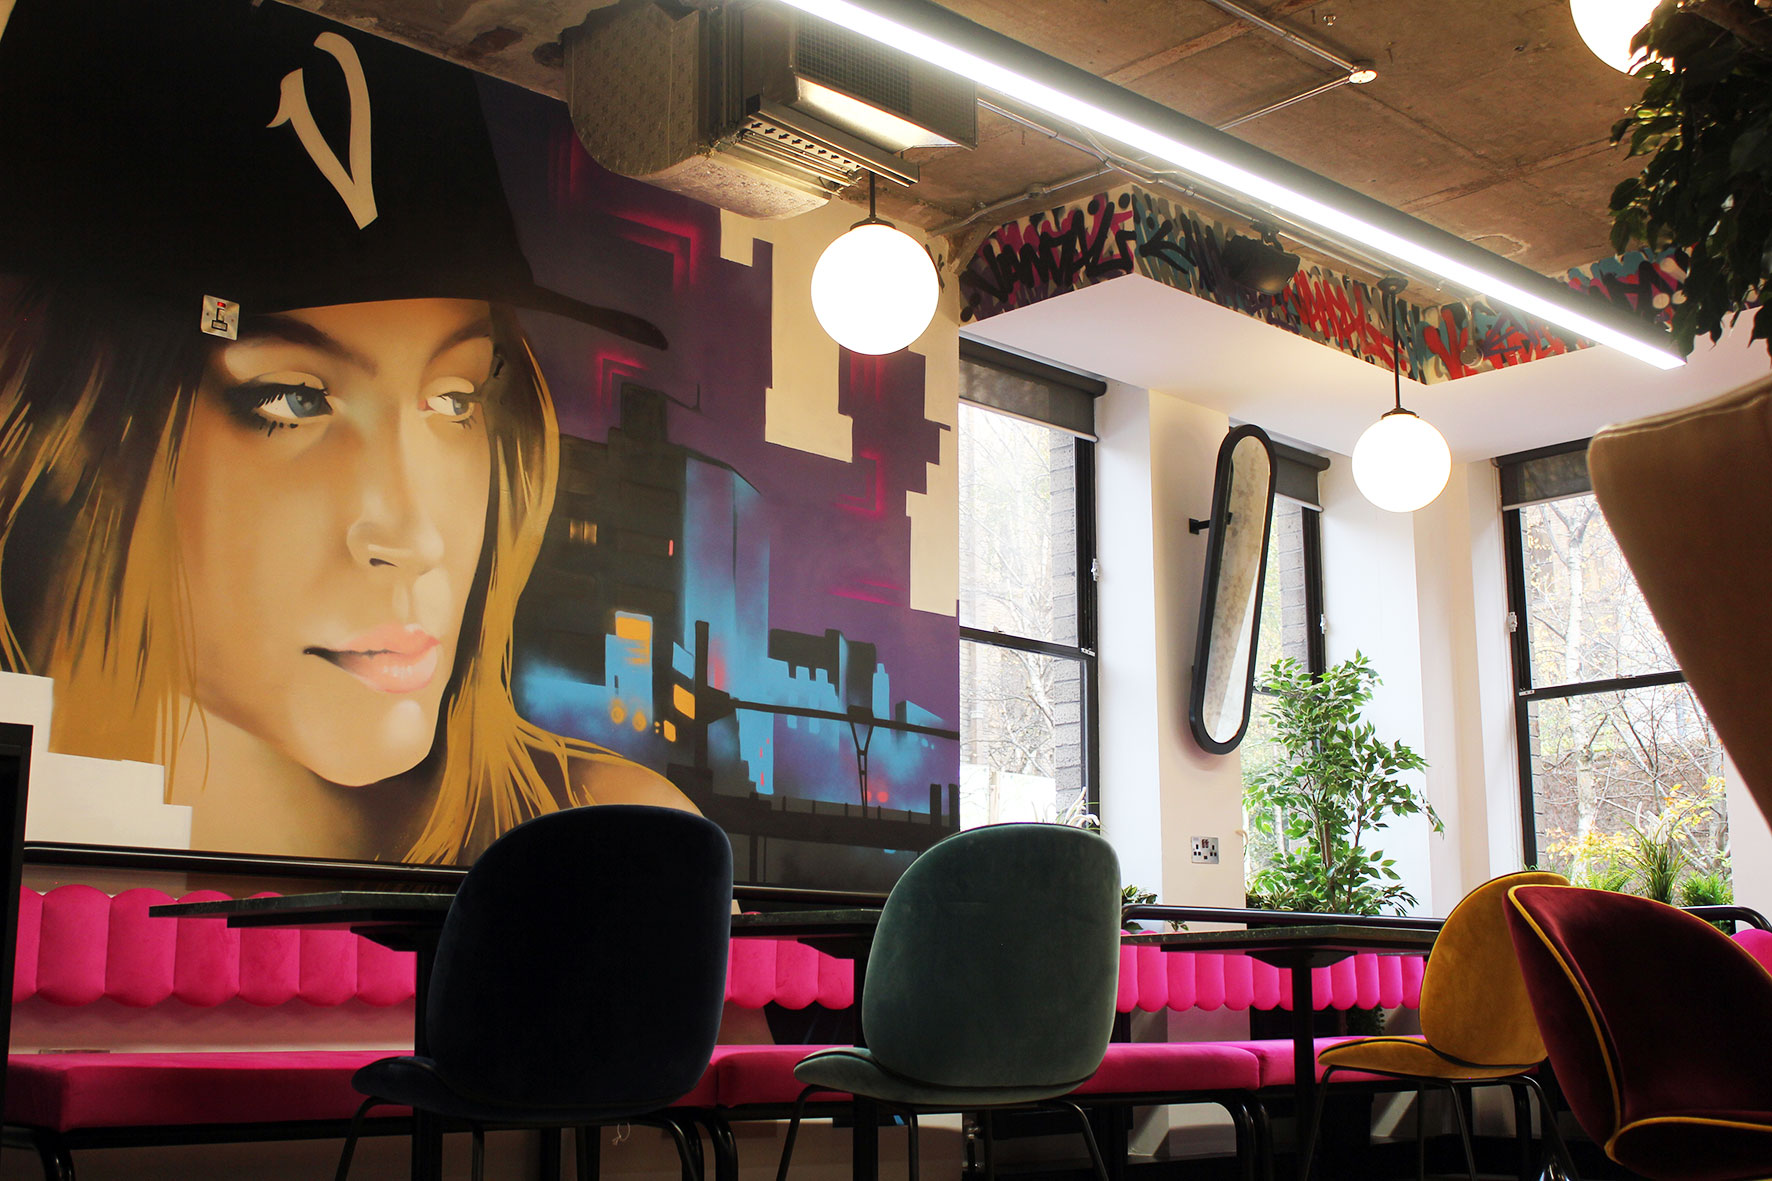 Iconic Offices' location at The Greenway utilizes original art, bright colors and expressive design through its workspace and common areas.